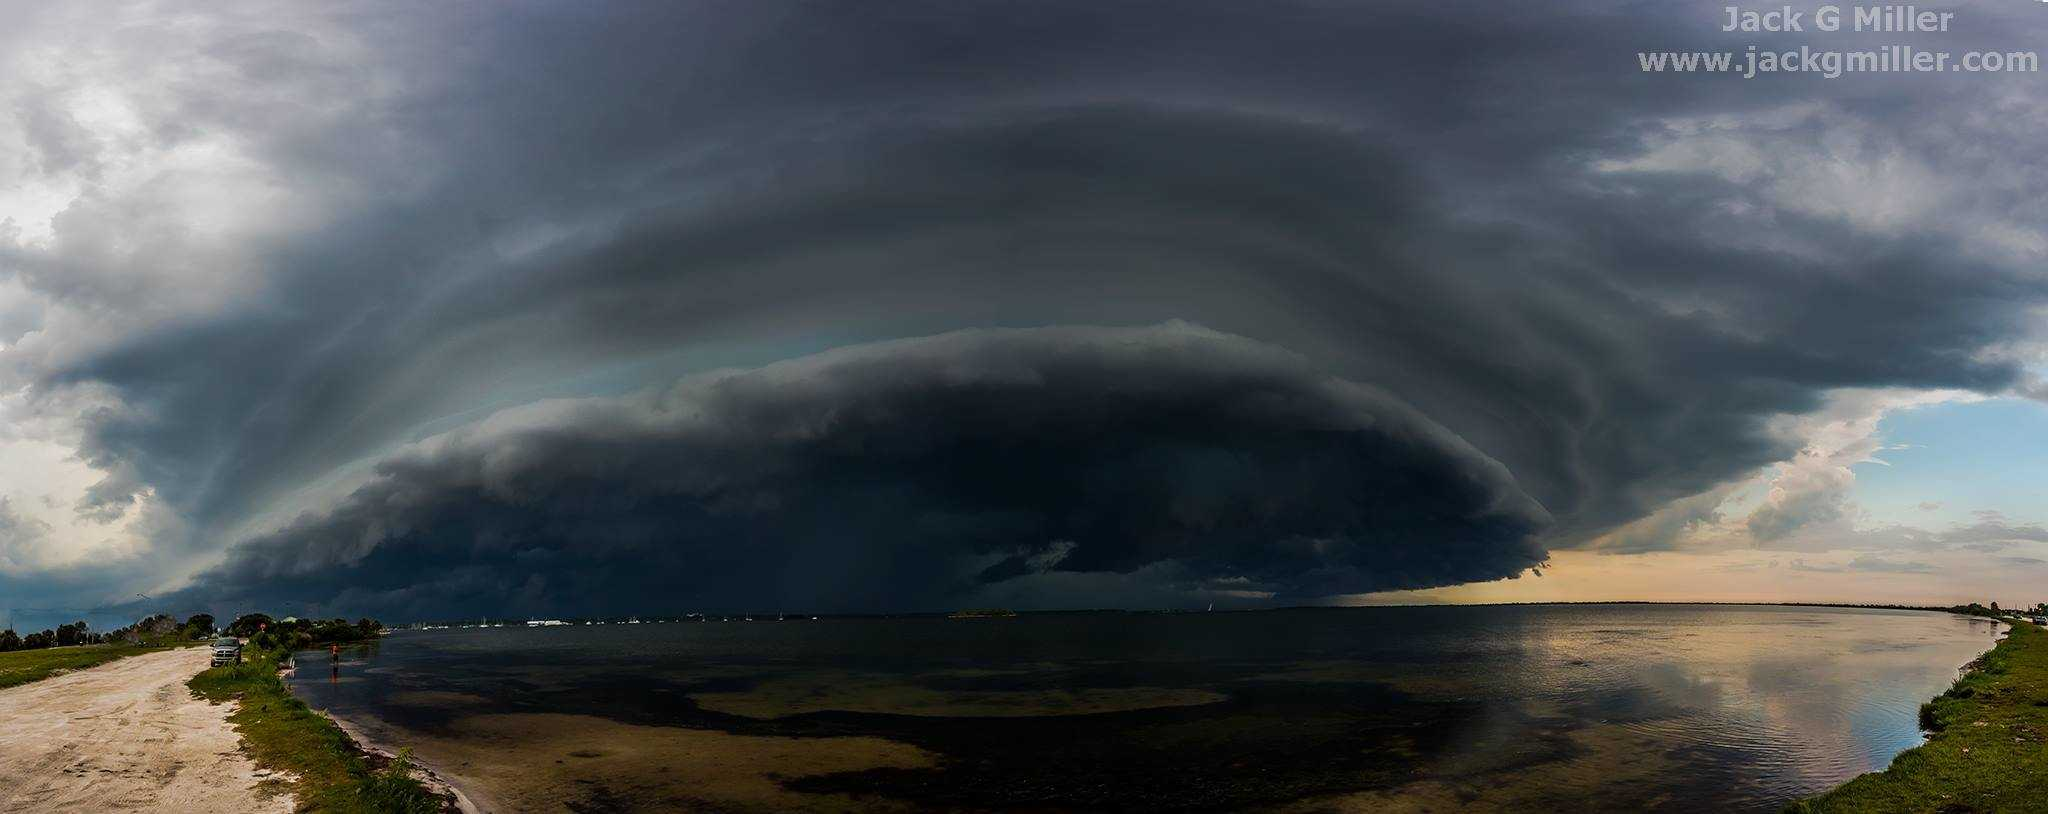 Shelf cloud from Wednesday's set of severe storms approaching Titusville, Fl. 14 Image Panoramic. 5/20/2015